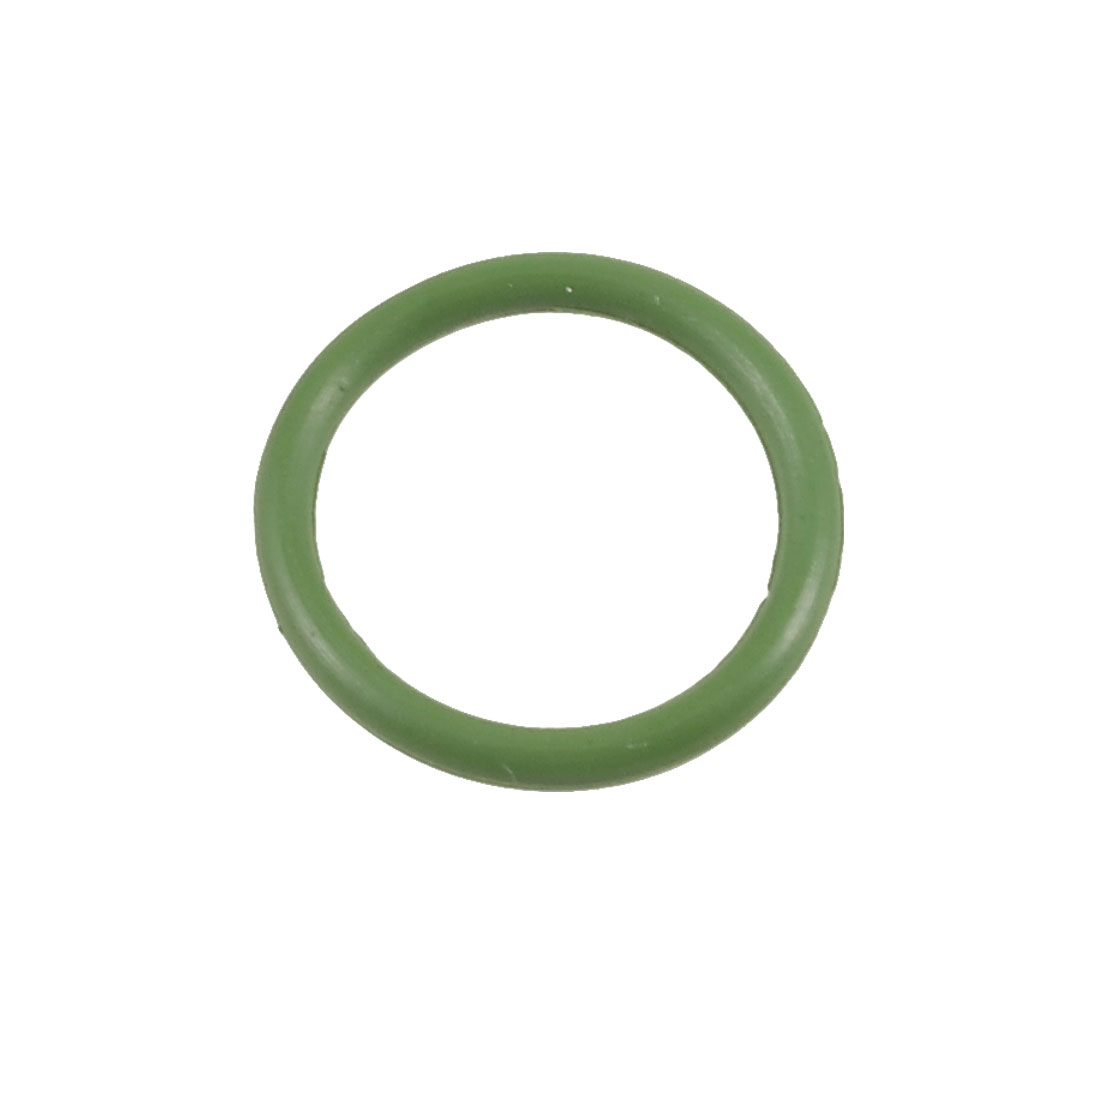 20mm x 15 x 2mm Fluorine Rubber O Ring Oil Seals Grommets Green